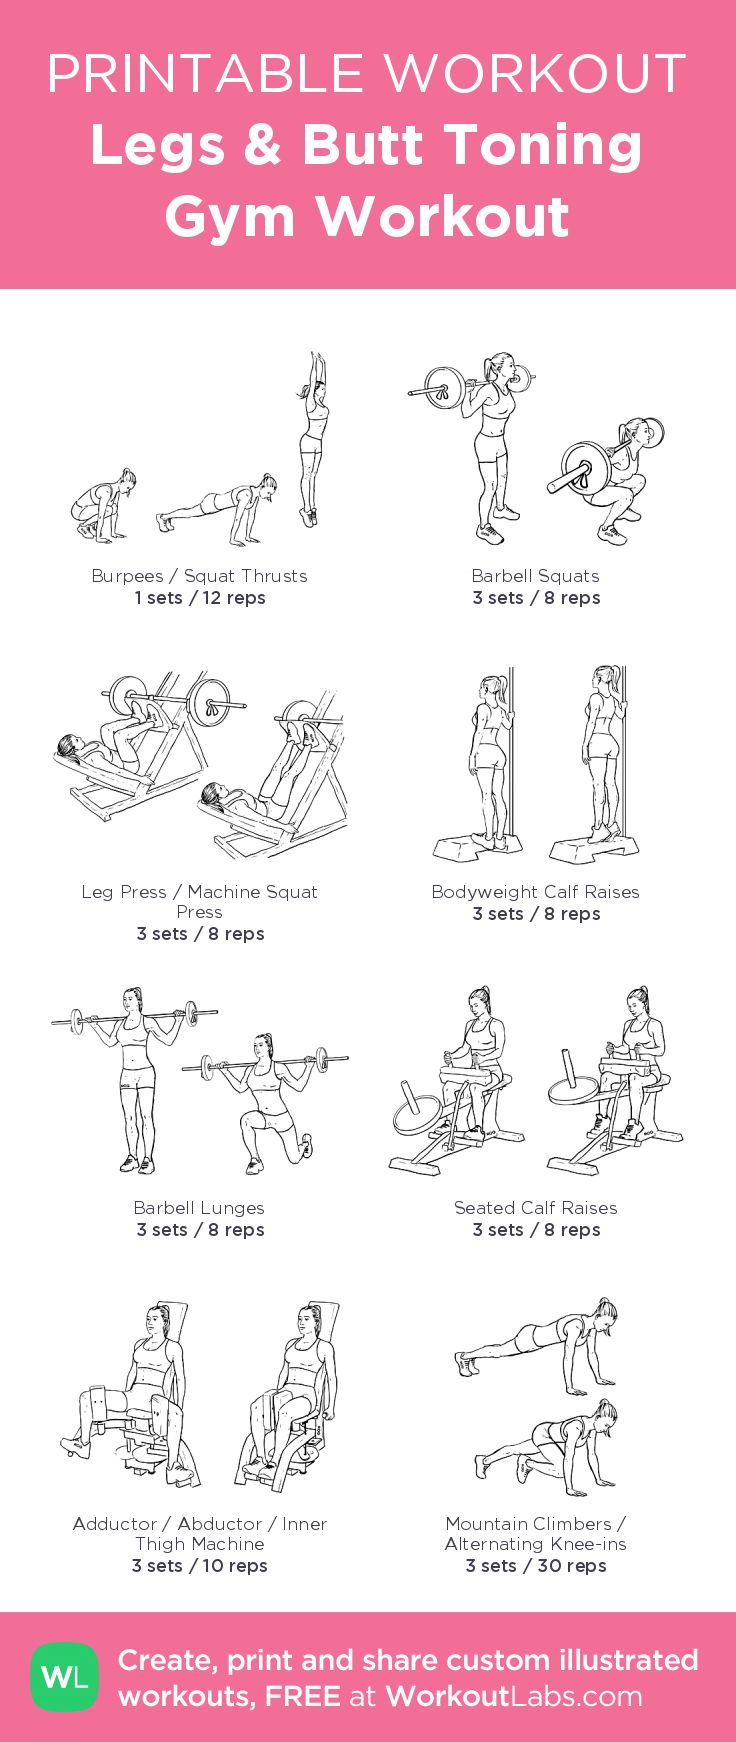 Legs & Butt Toning Gym Workout– my custom exercise plan created at WorkoutLabs.com • Click through to download as a printable workout PDF #customworkout